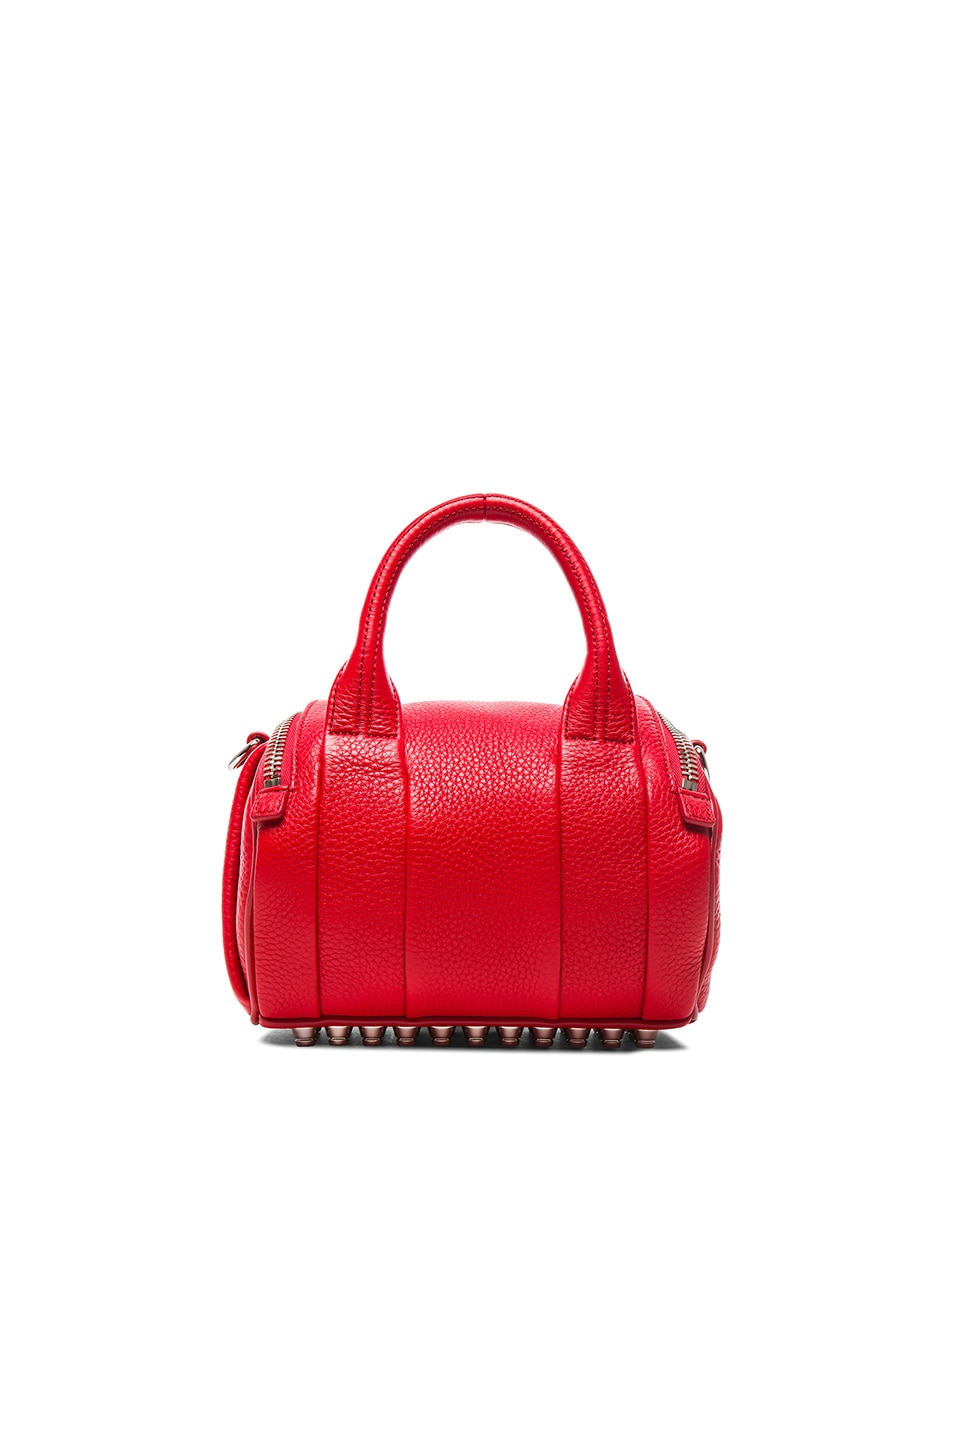 Image 3 of Alexander Wang Mini Rockie Bag with Silver Hardware in Cult